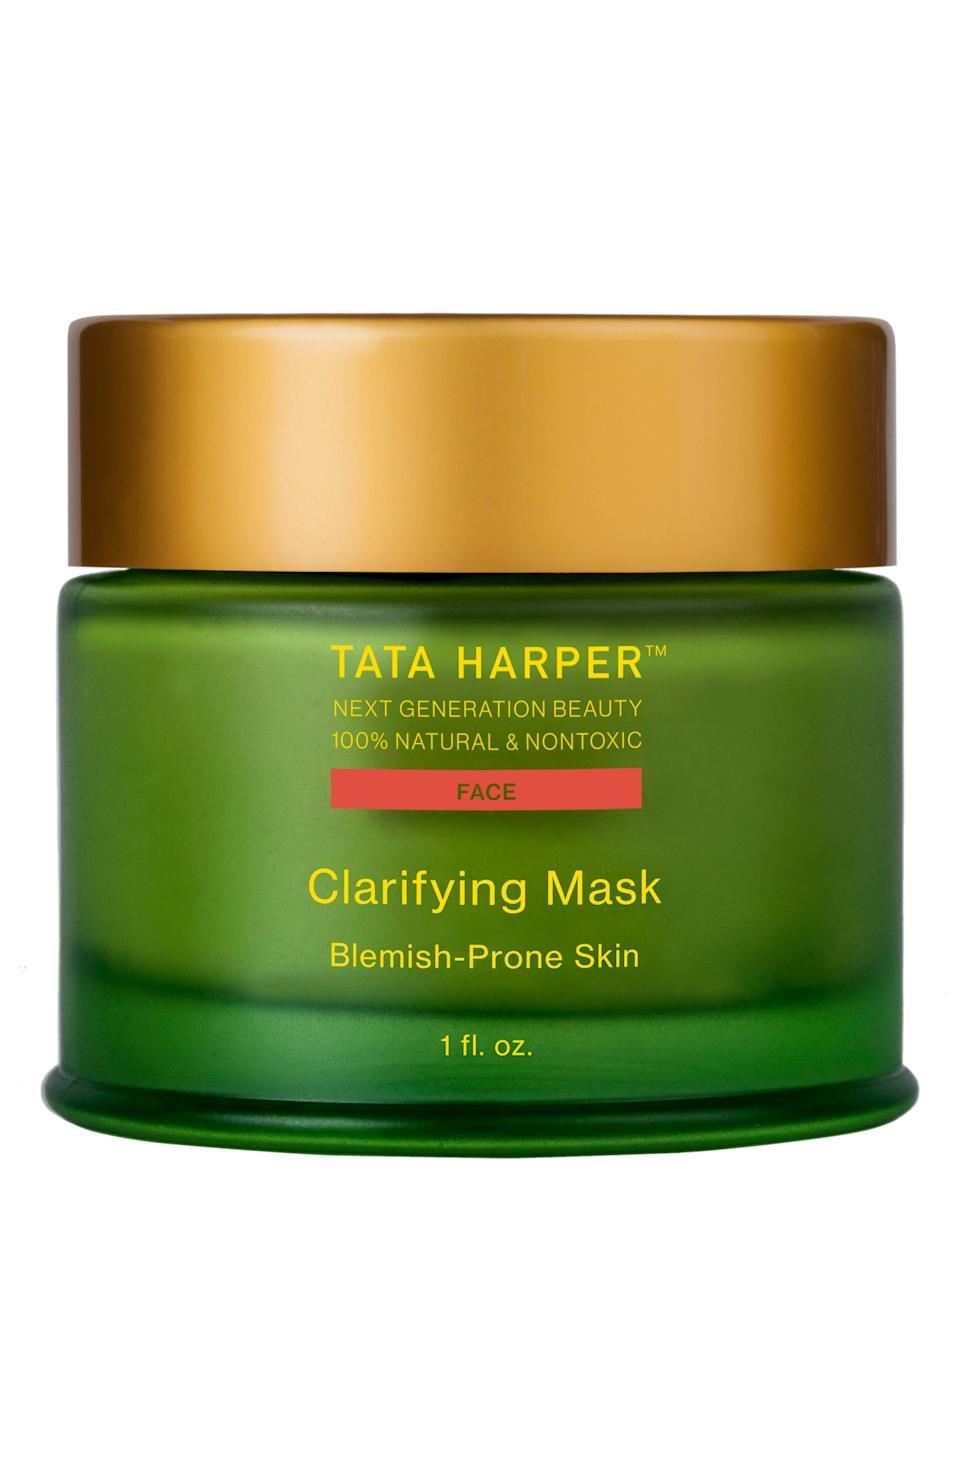 """<h3><strong><a href=""""https://www.tataharperskincare.com/"""" rel=""""nofollow noopener"""" target=""""_blank"""" data-ylk=""""slk:Tata Harper"""" class=""""link rapid-noclick-resp"""">Tata Harper</a></strong></h3><br>As if we needed more reasons to love Tata Harper, sustainability is high on the brand's agenda. Already a cult hit, thanks to its 100% natural ingredients, Tata's eponymous brand is EcoCert certified, meaning everything production-wise — from the imports to distribution — has been evaluated green from start to finish.<br><br>The majority of Tata Harper's luxurious products come in glass bottles. Being composed of natural materials, glass is more efficiently recycled and reused. """"For every 10% increase in recycled glass, CO2 emissions go down 5% – so recycling our (and all) glass packaging is very important for the environment,"""" a spokesperson from the brand says.<br><br>What isn't glass is as sustainable as possible, with plastic resin derived from corn (a renewable alternative to petroleum), and the brand also uses soy-based ink to print (in part due to its low petrochemical content).<br><br><strong>Tata Harper</strong> Clarifying Mask, $, available at <a href=""""https://shop.nordstrom.com/s/tata-harper-skincare-clarifying-mask/4680279"""" rel=""""nofollow noopener"""" target=""""_blank"""" data-ylk=""""slk:Nordstrom"""" class=""""link rapid-noclick-resp"""">Nordstrom</a>"""